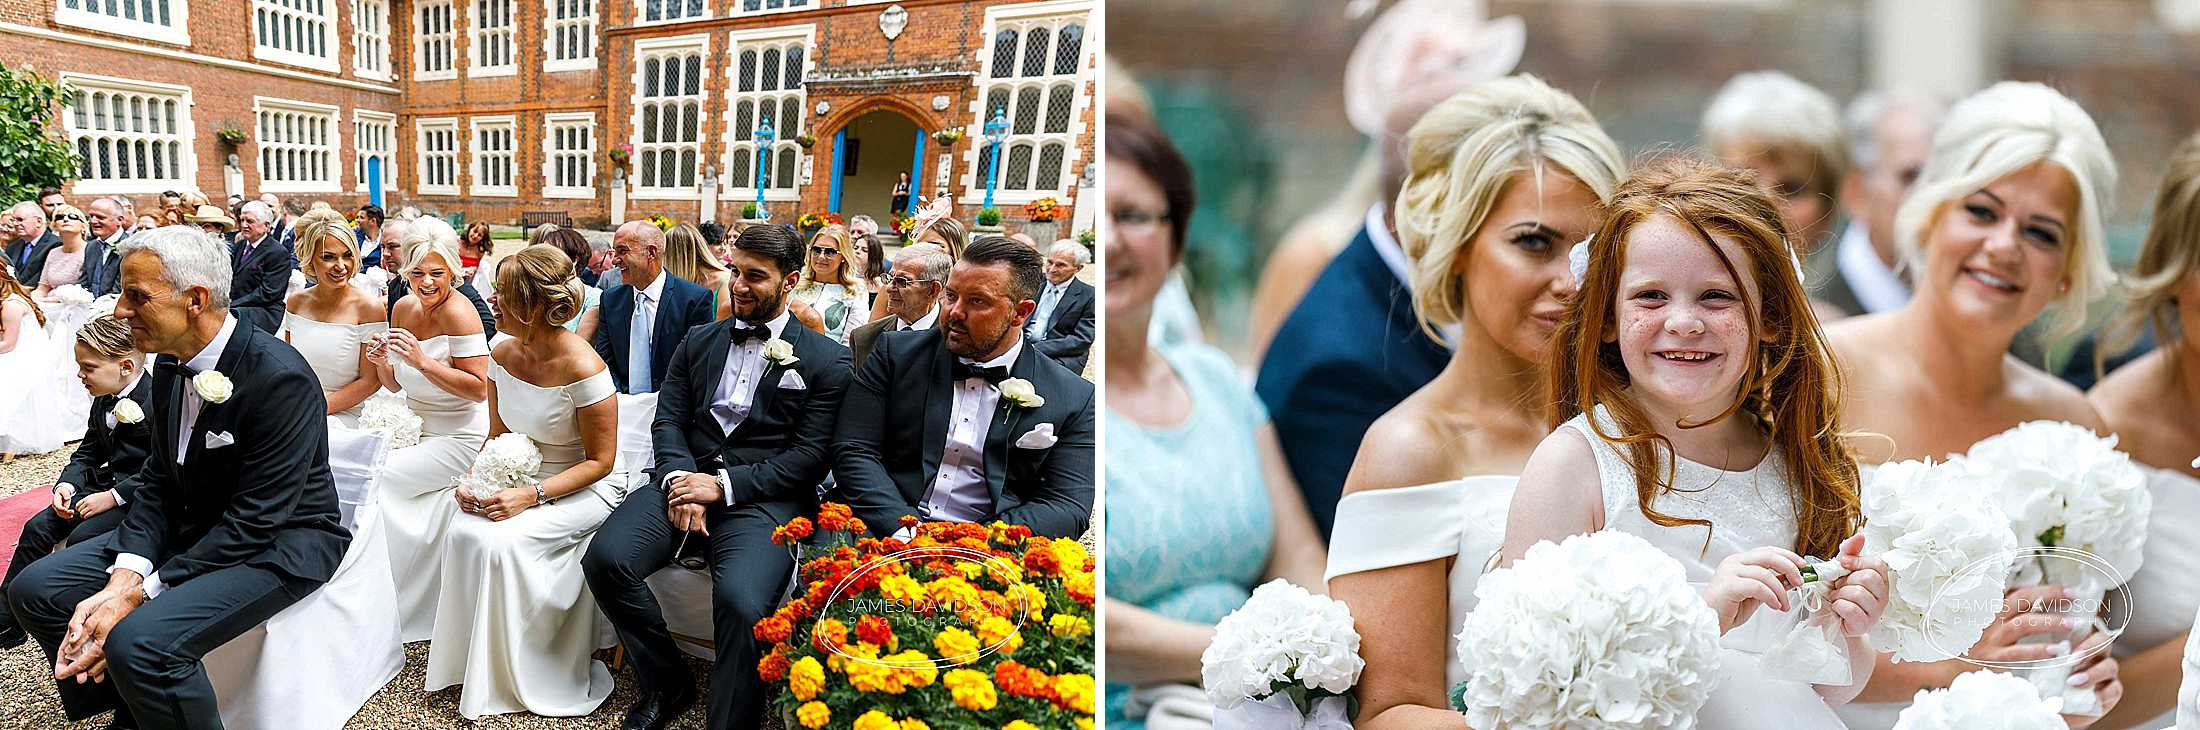 gosfield-hall-wedding-photography-059